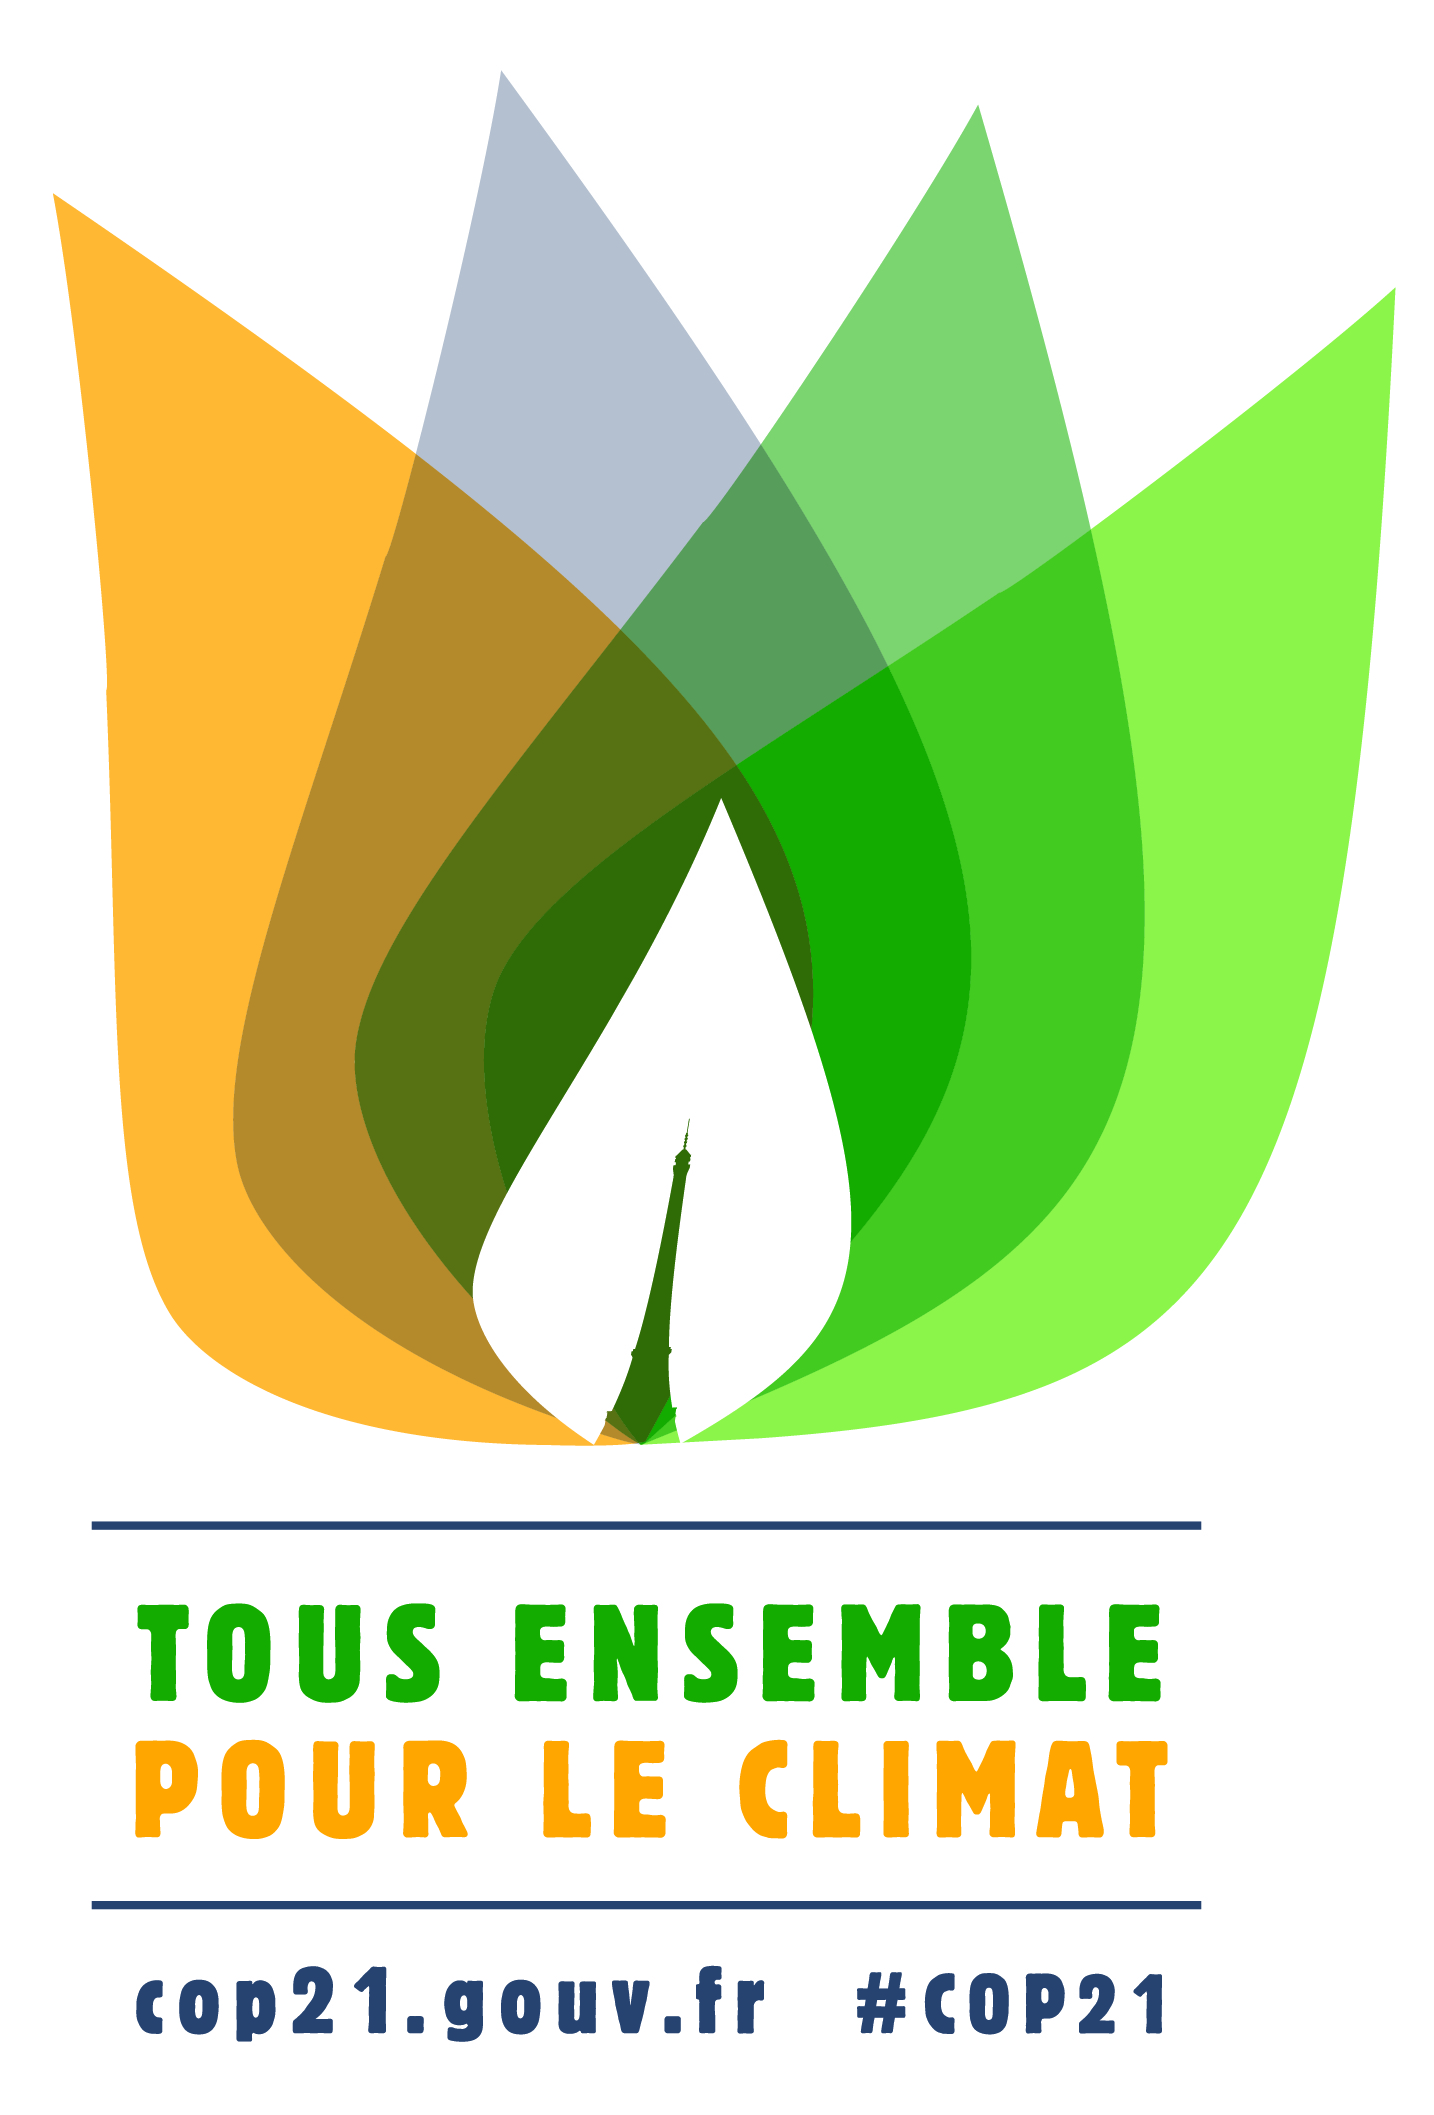 https://intra.ac-reims.fr/images/stories/controle_interne_comptable_CIC/COP21-2-01.jpg